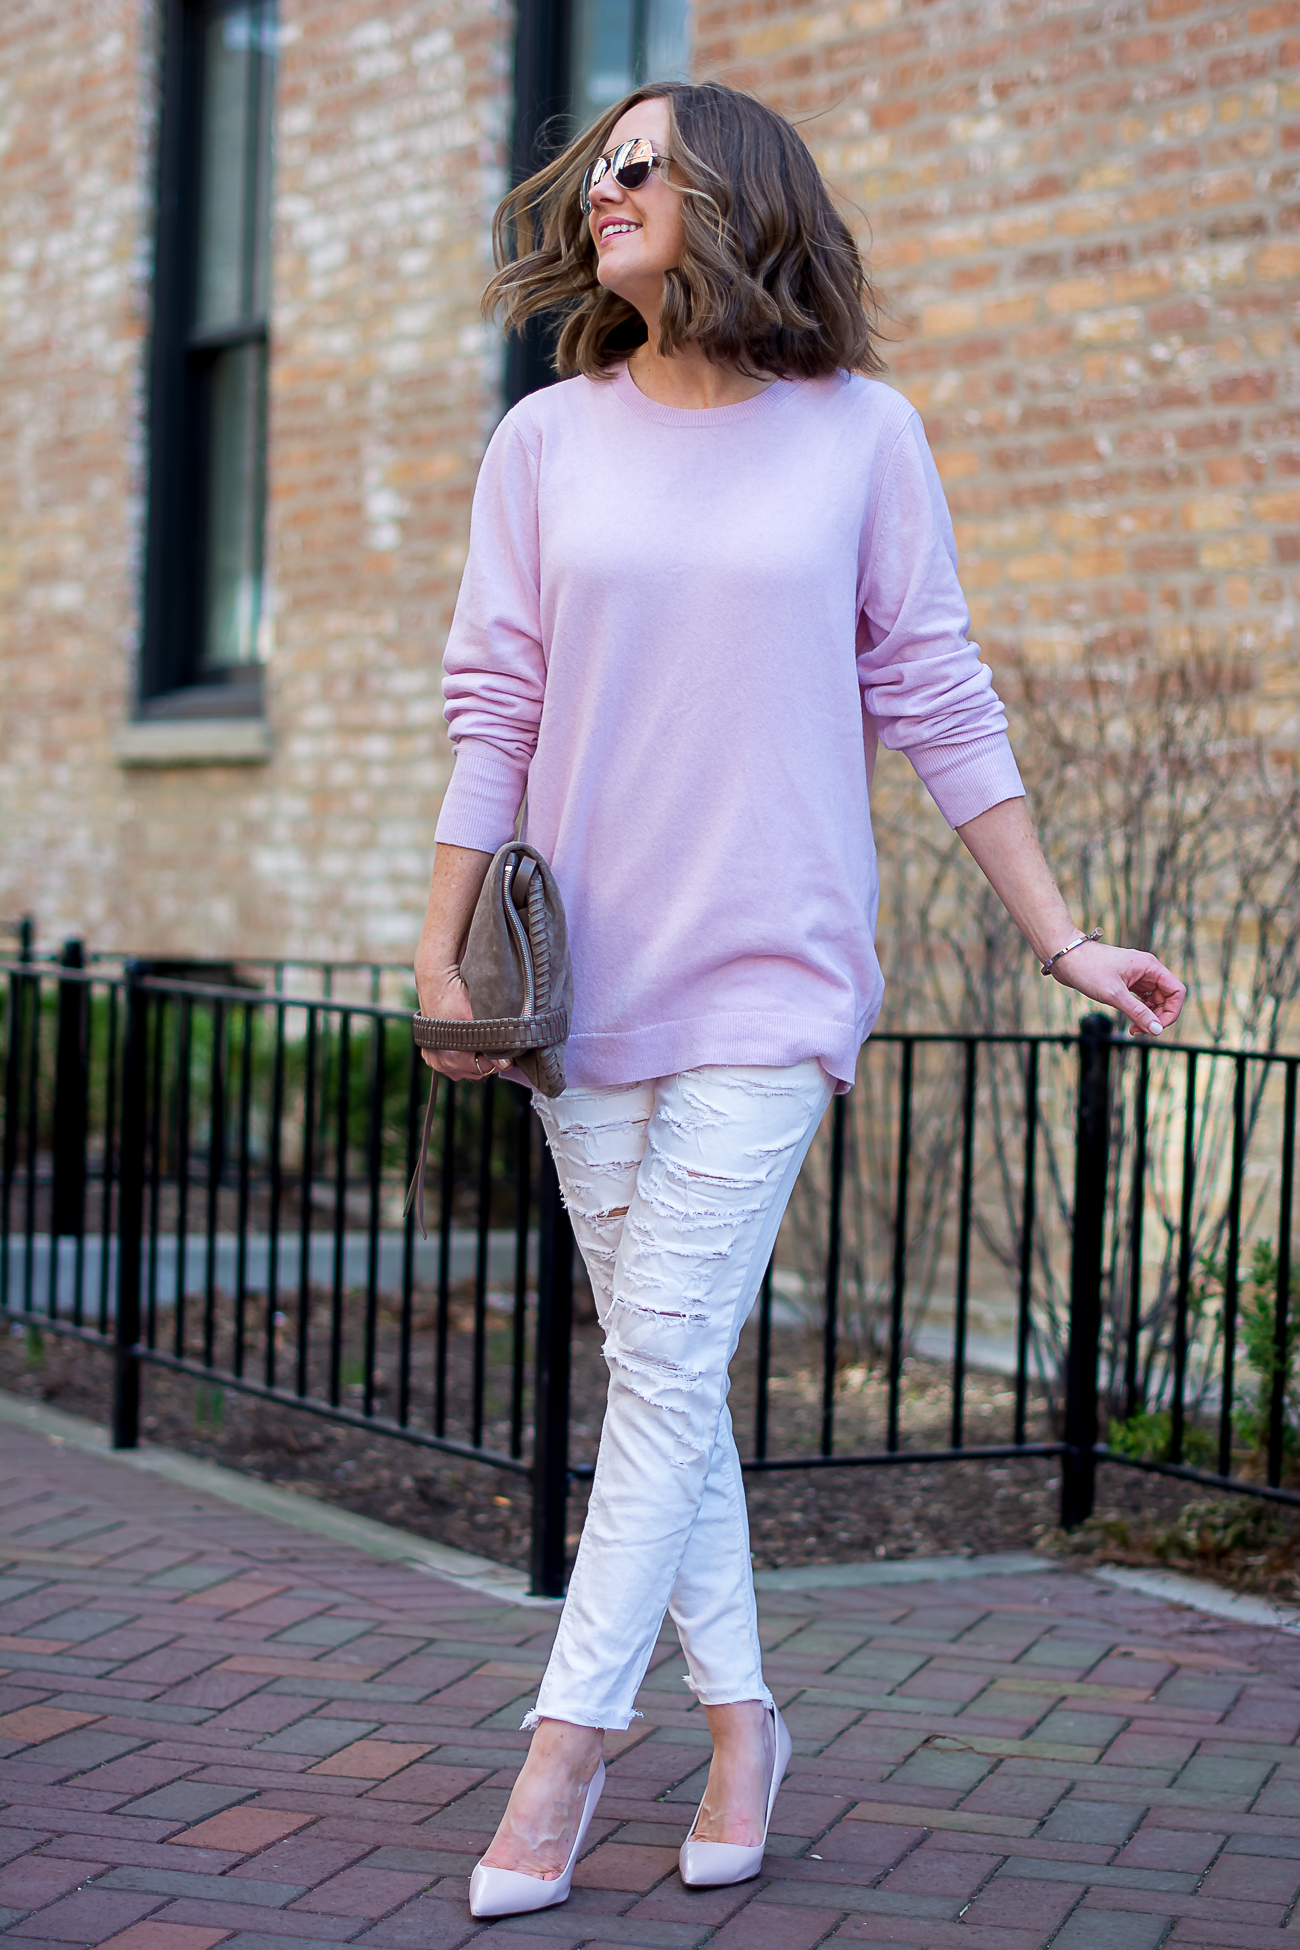 banana-republic-oversized-pink-wool-sweater-american-eagle-distressed-skiny-jeans-blush-heels-all-saints-convertible-clutch-simple-spring-pastels